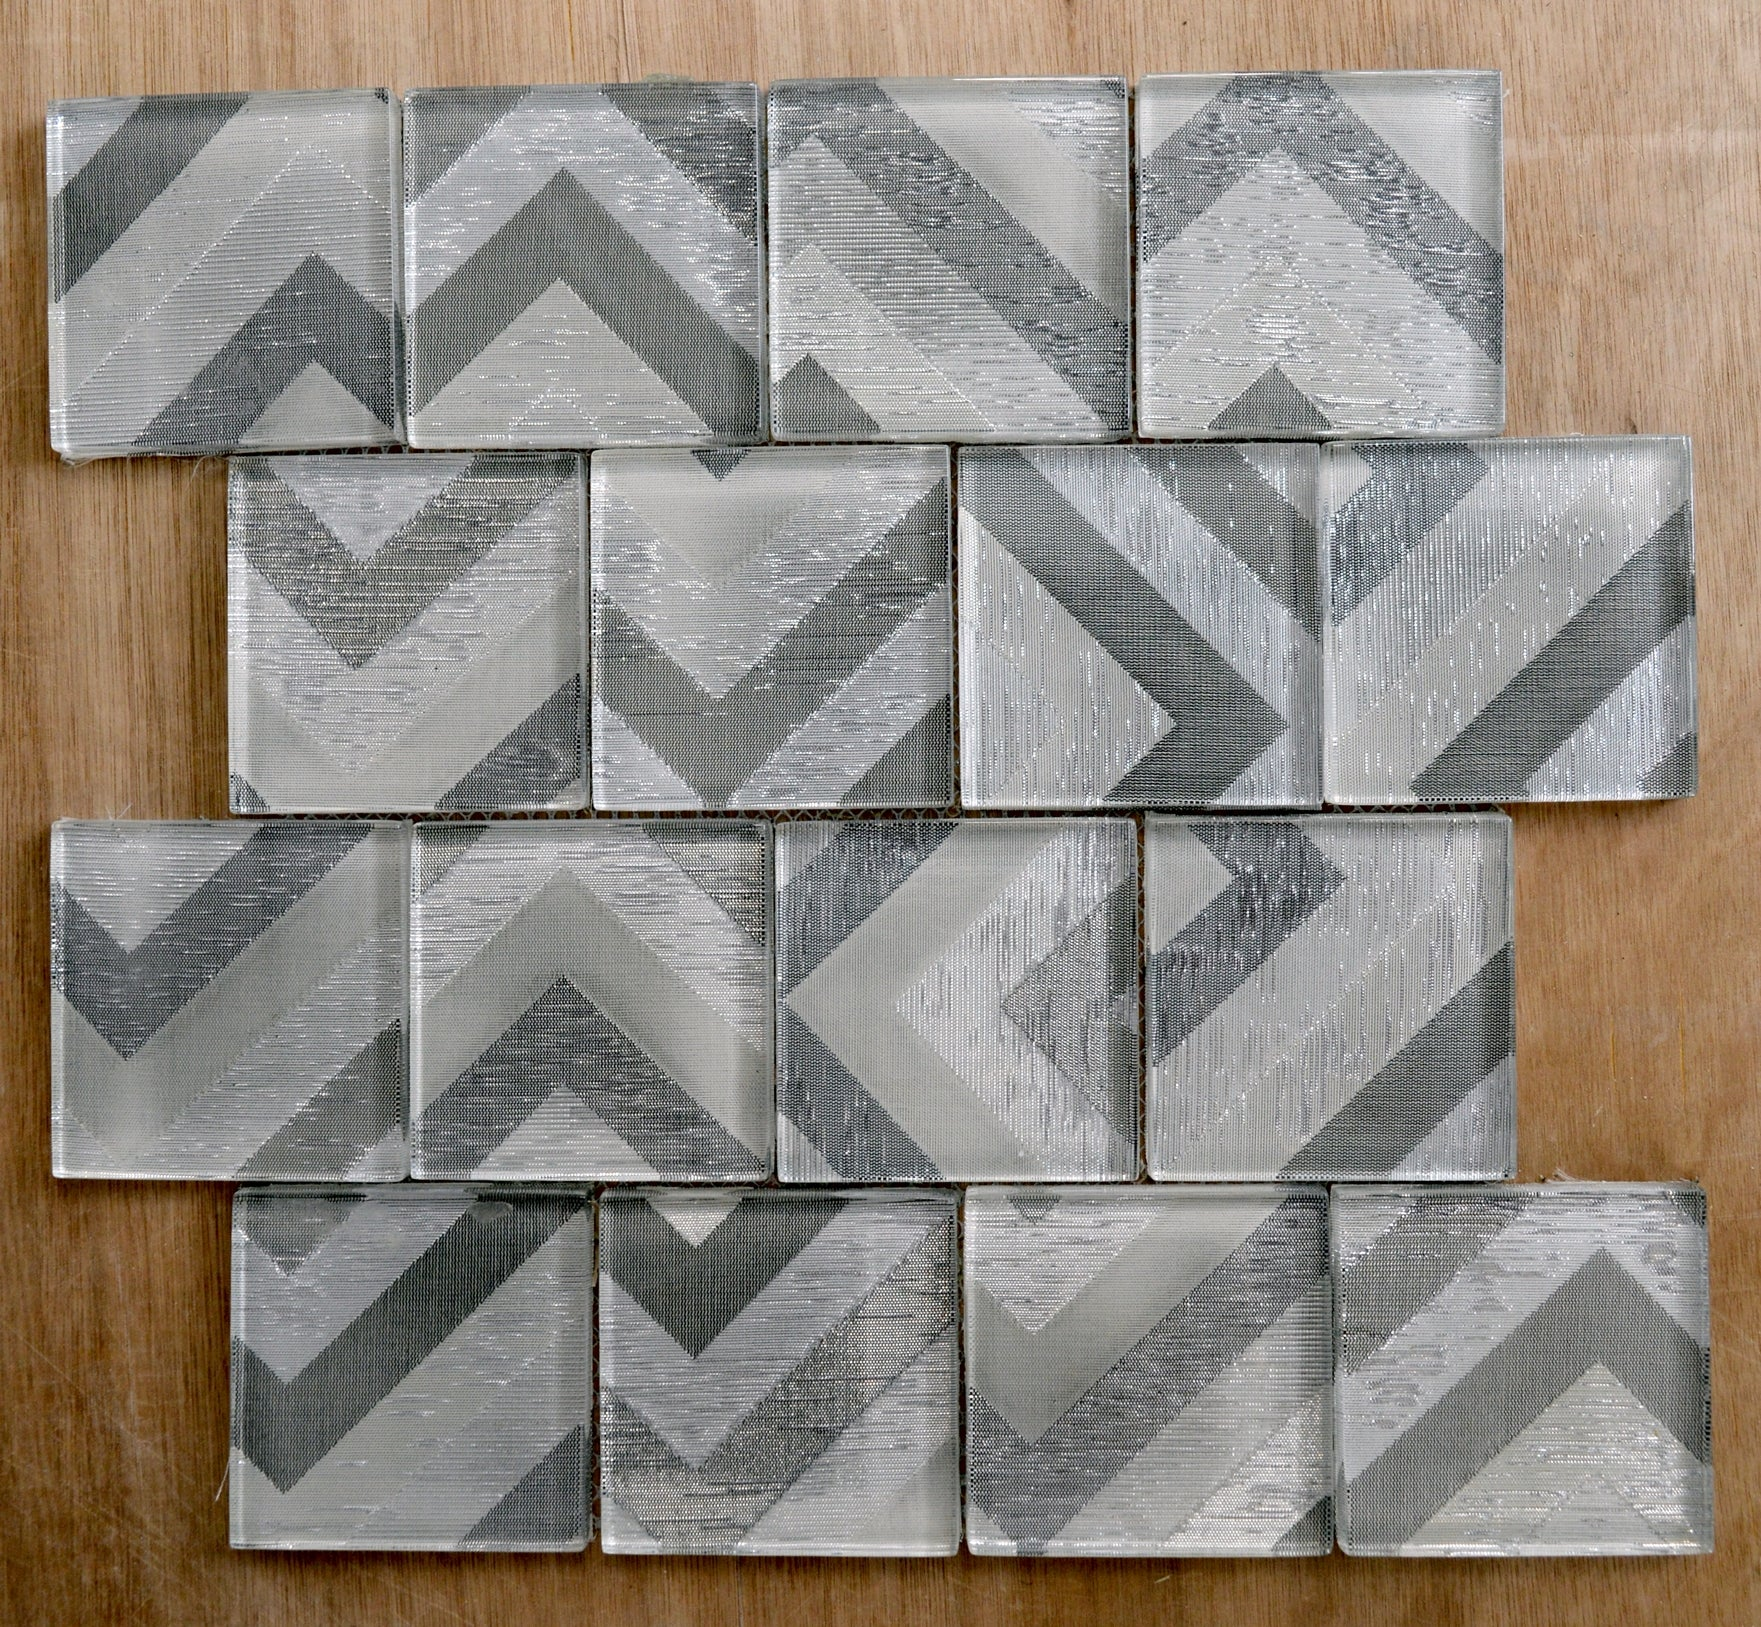 Modern playful silver arrows glass mosaic tiles | 1 sheet 30 cm x 30 cm | 11 sheets 1sqm